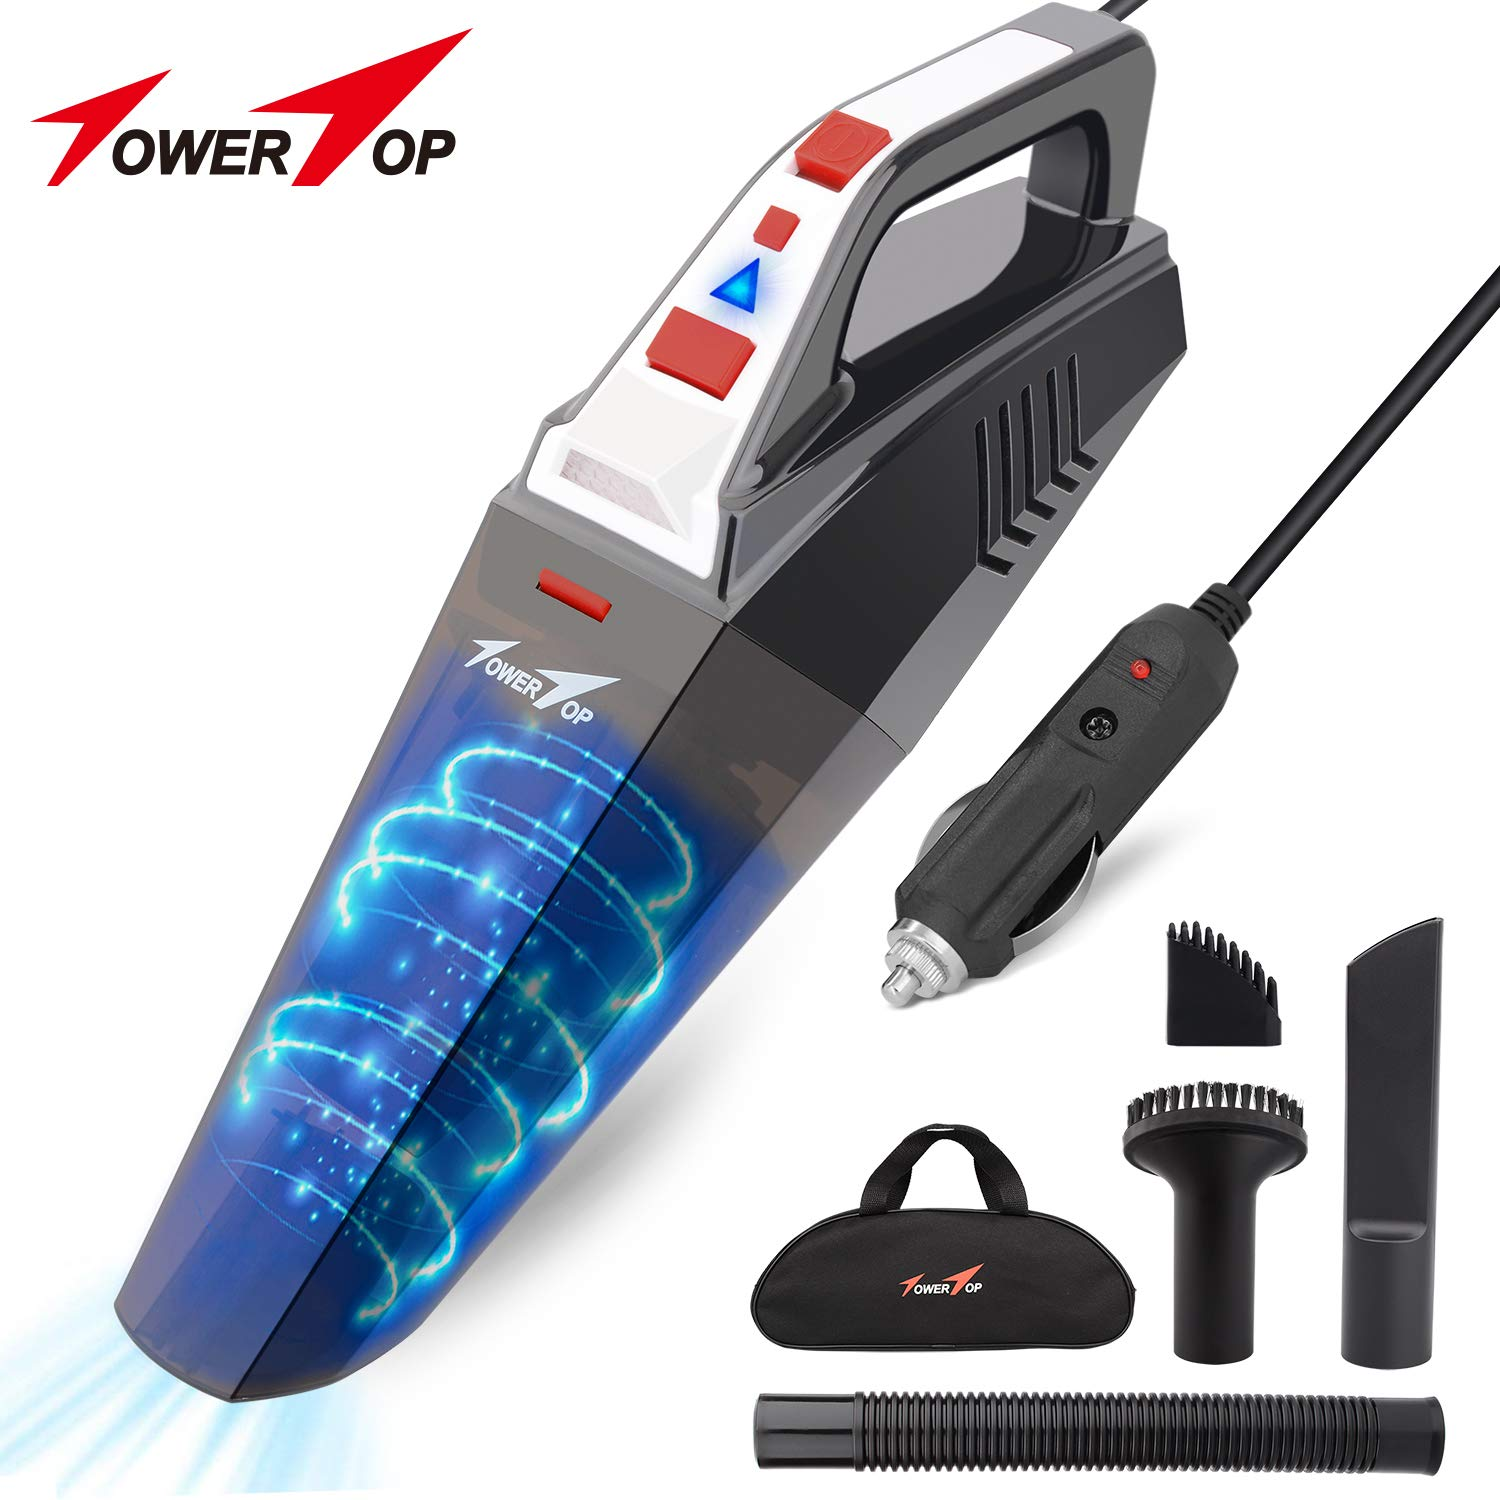 Cleaner Powerful Handheld Portable Cleaning